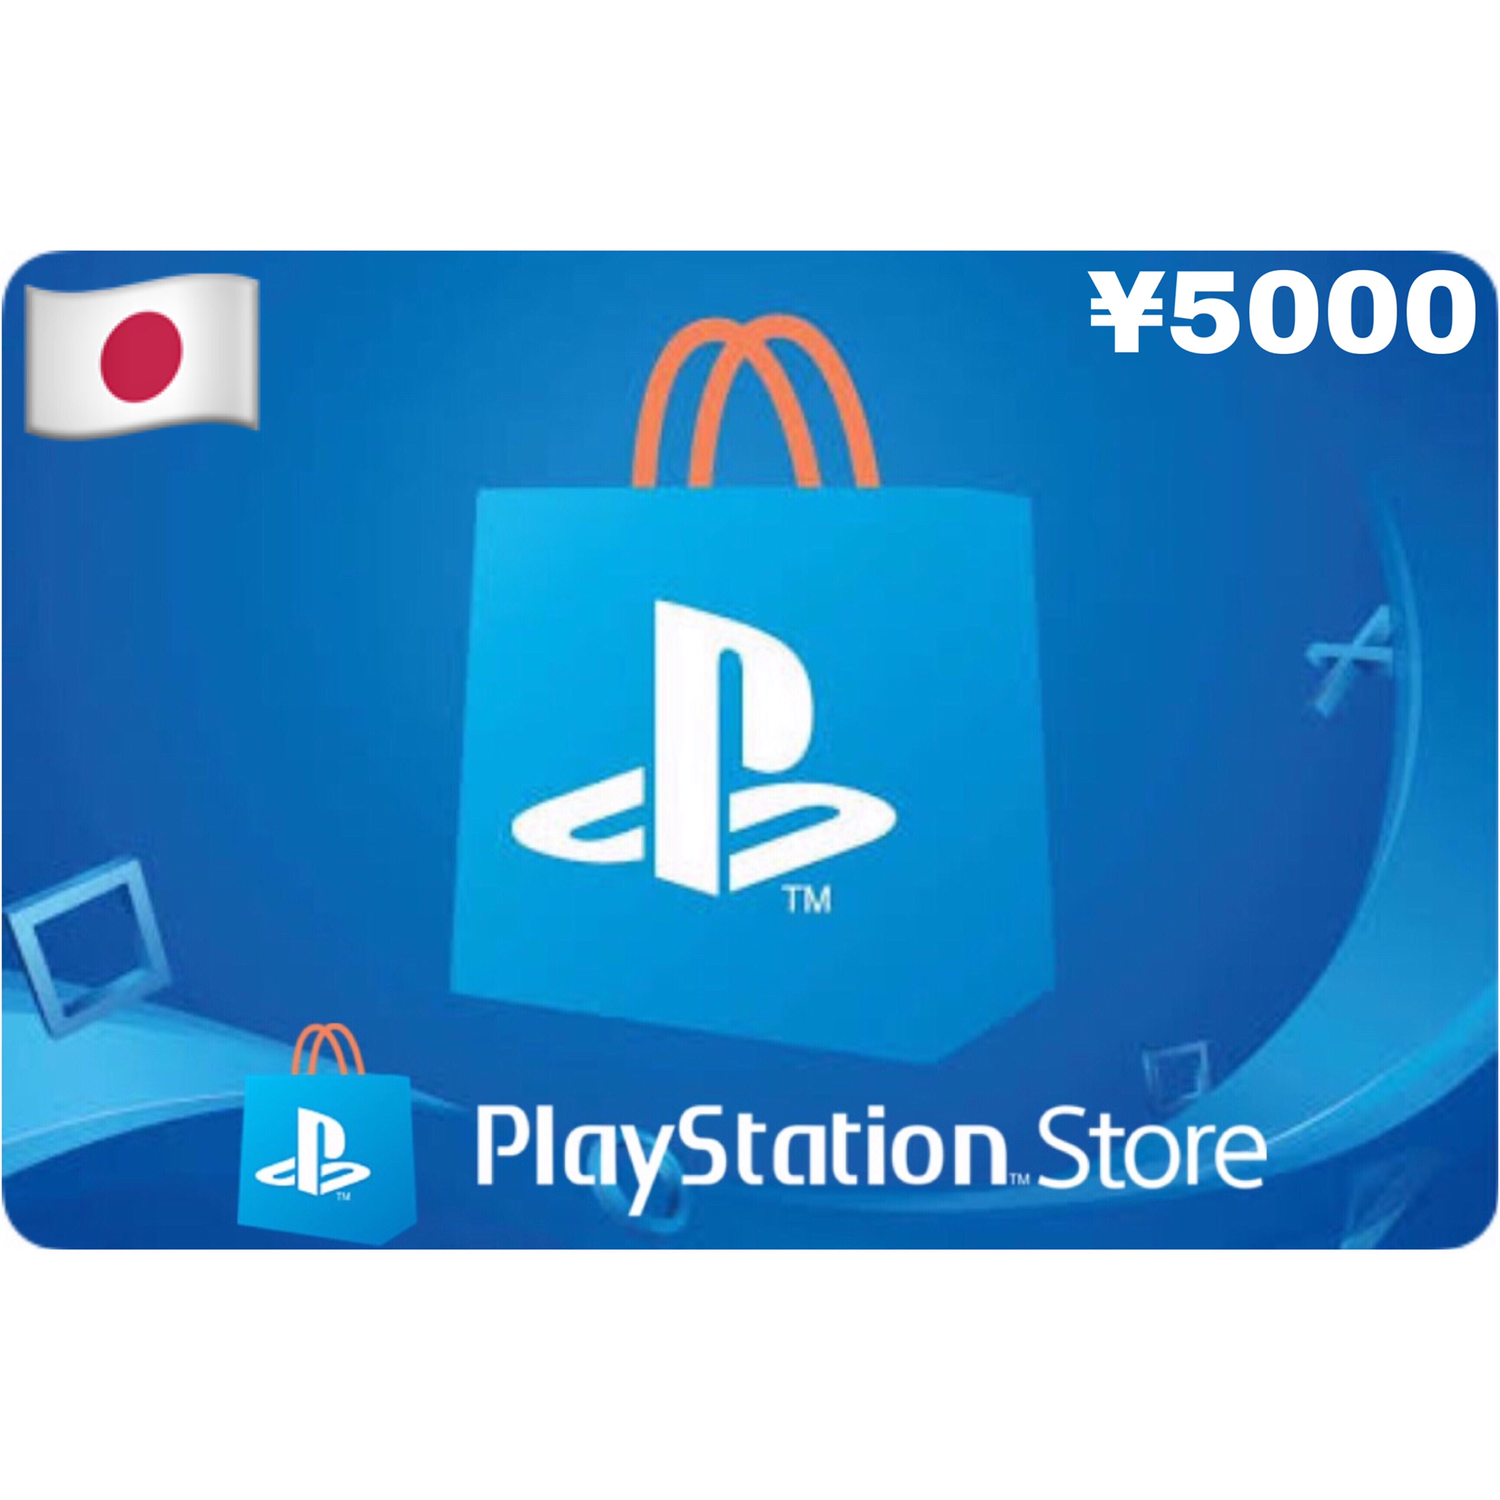 Playstation (PSN Card) Japan ¥5000